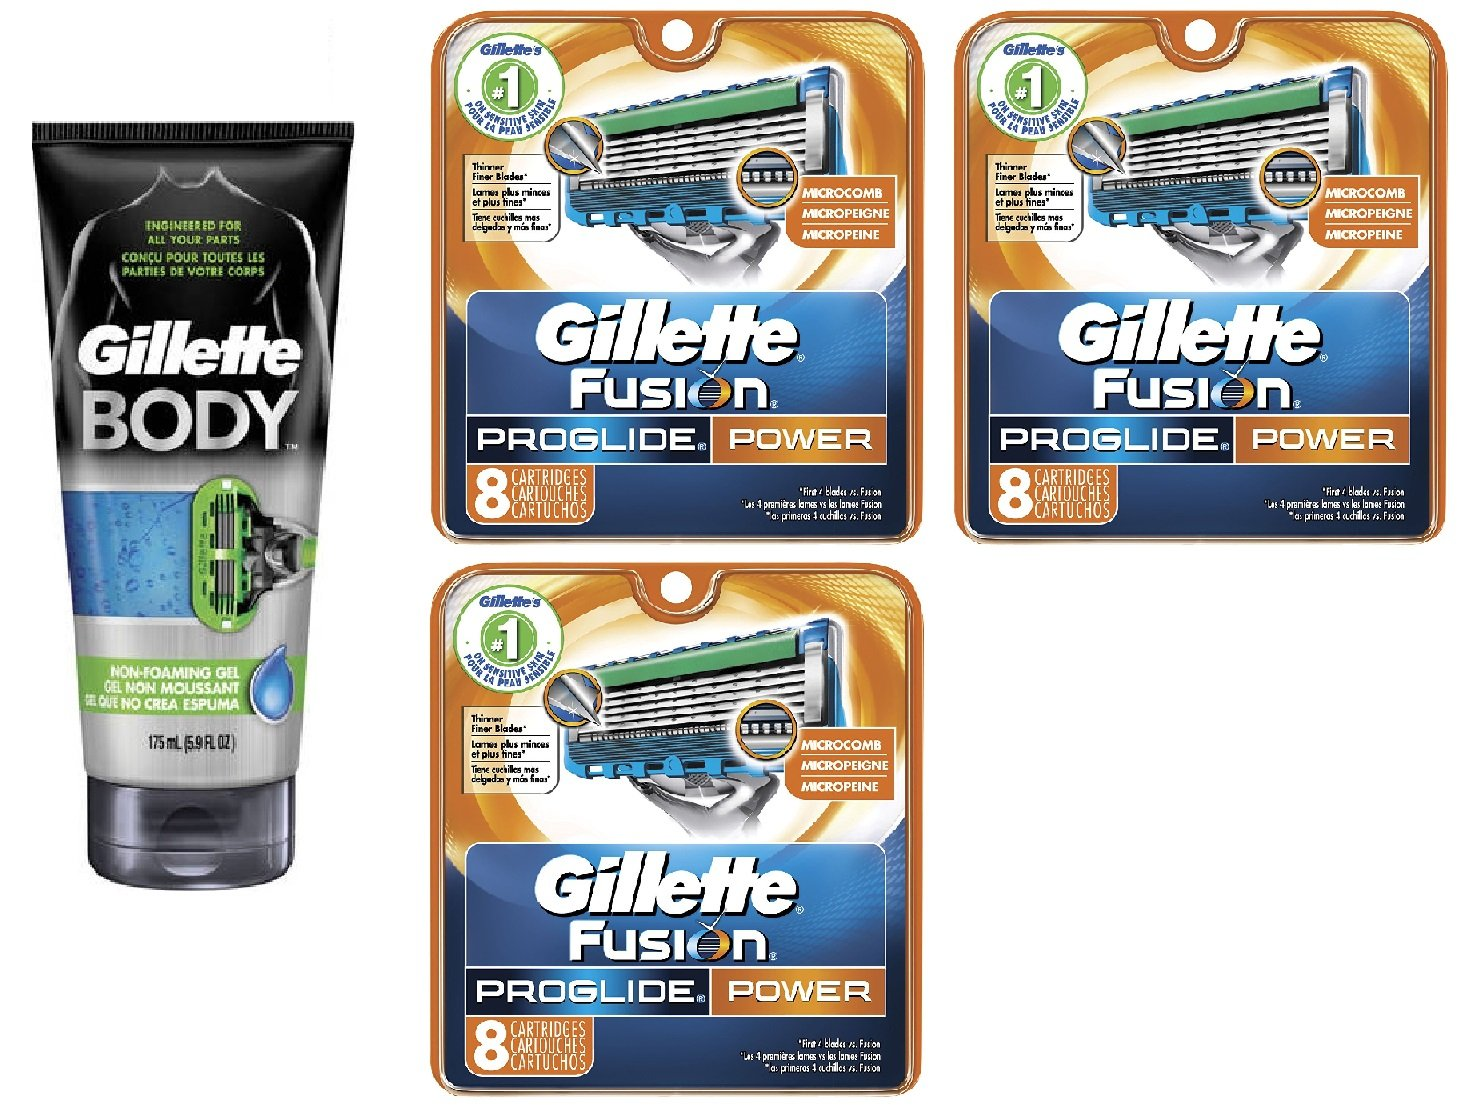 Gillette Body Non Foaming Shave Gel for Men, 5.9 Fl Oz + Fusion Proglide Power Refill Blades 8 Ct (3 Pack) + FREE Luxury Luffa Loofah Bath Sponge On A Rope, Color May Vary